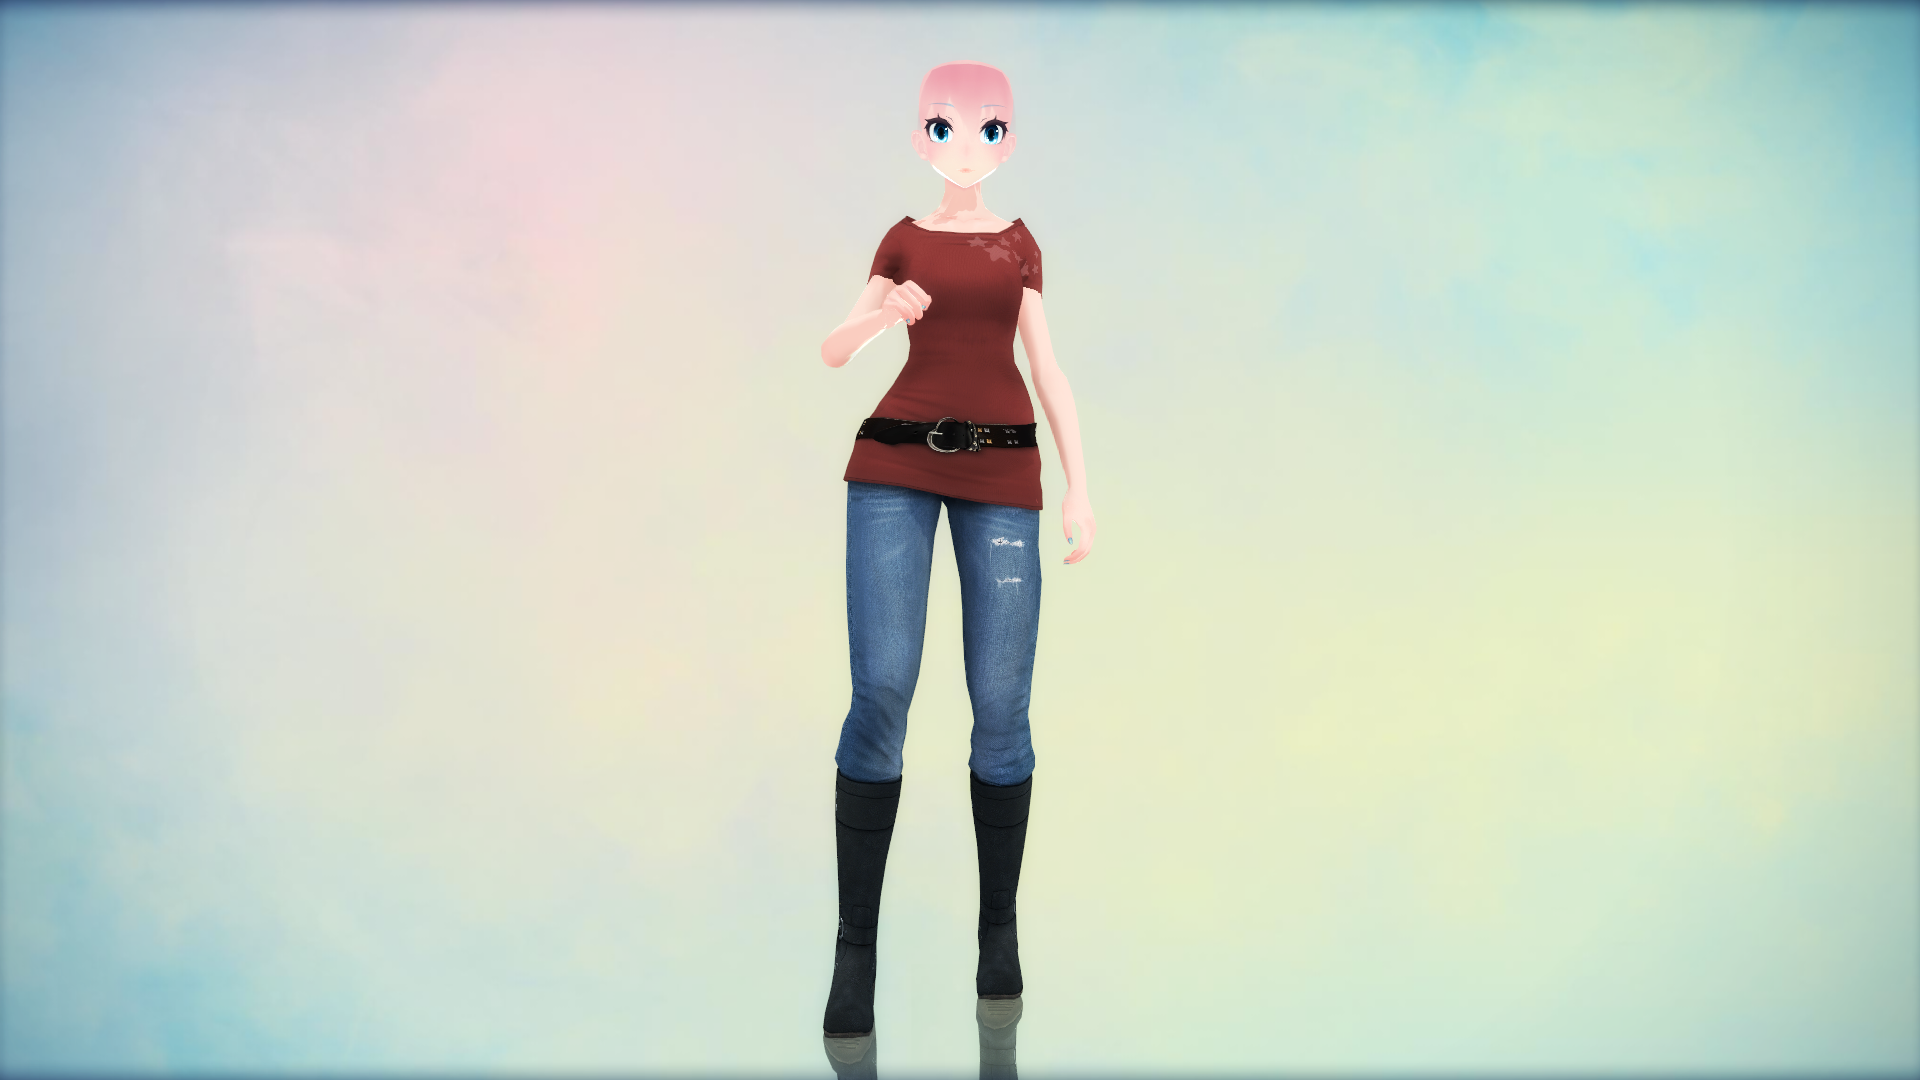 {MMD} Casual Outfit {DL} By HarukaSakurai On DeviantArt